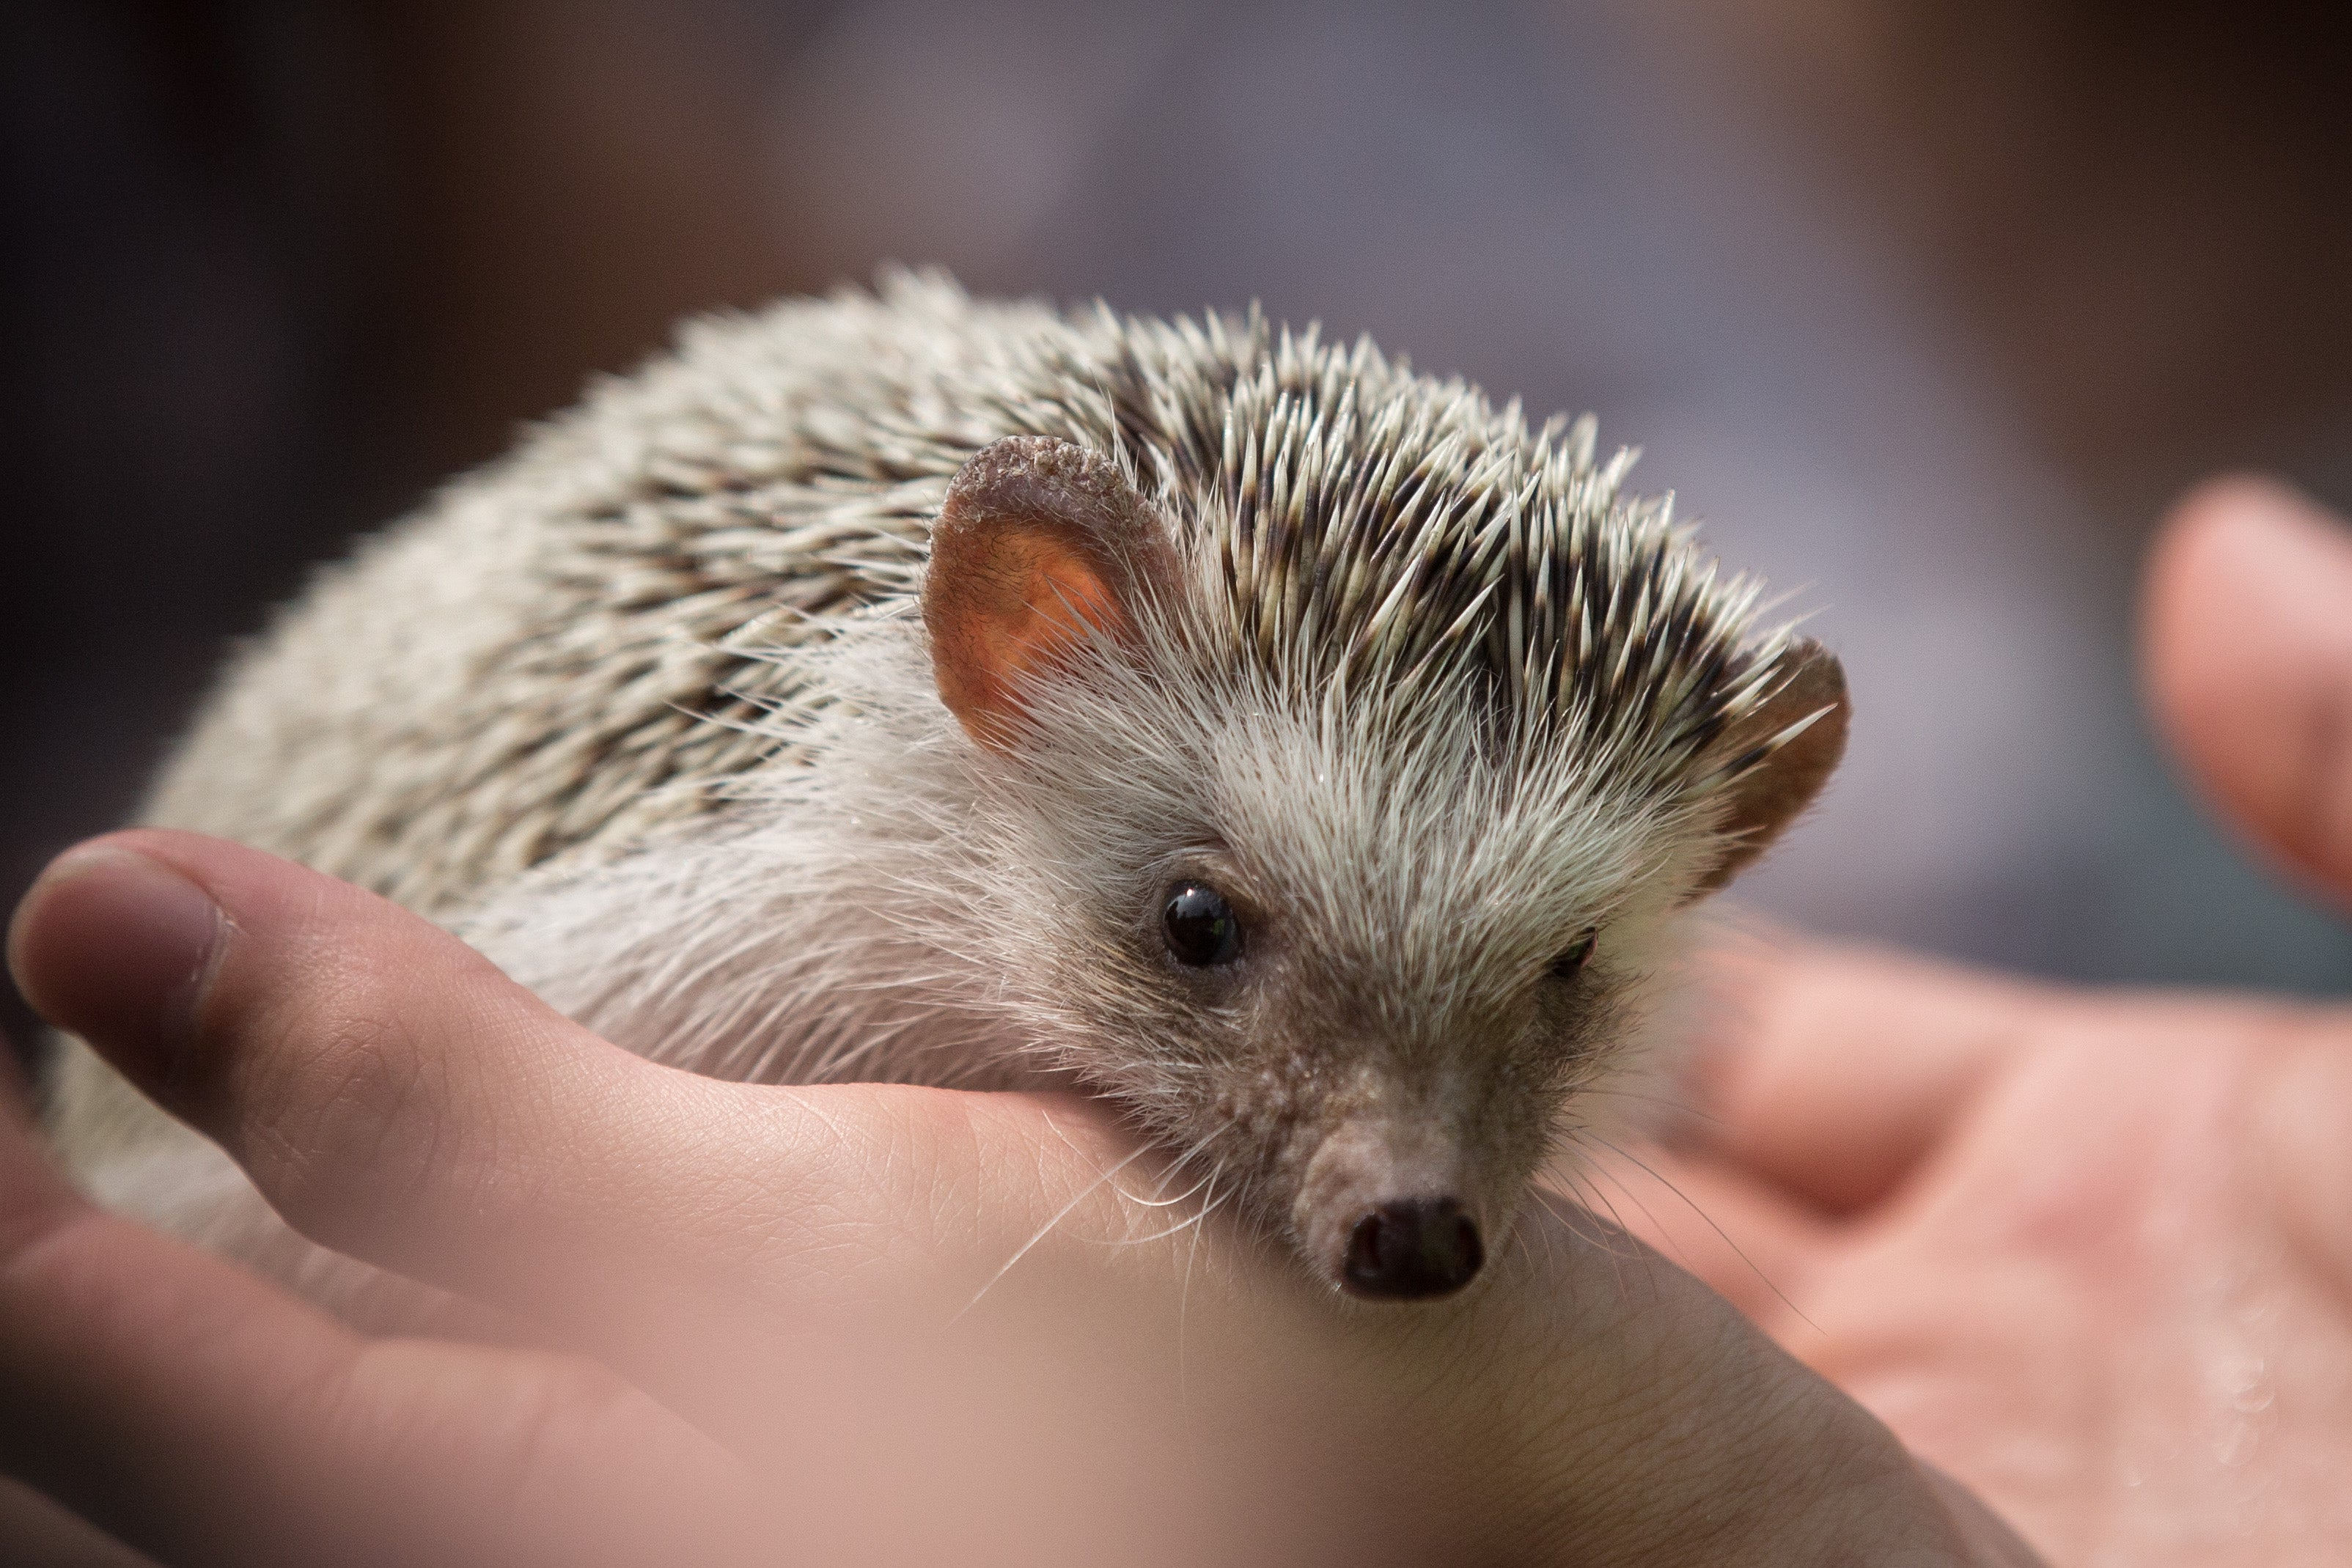 Turns Out, Hedgehogs Are At Home In Cities